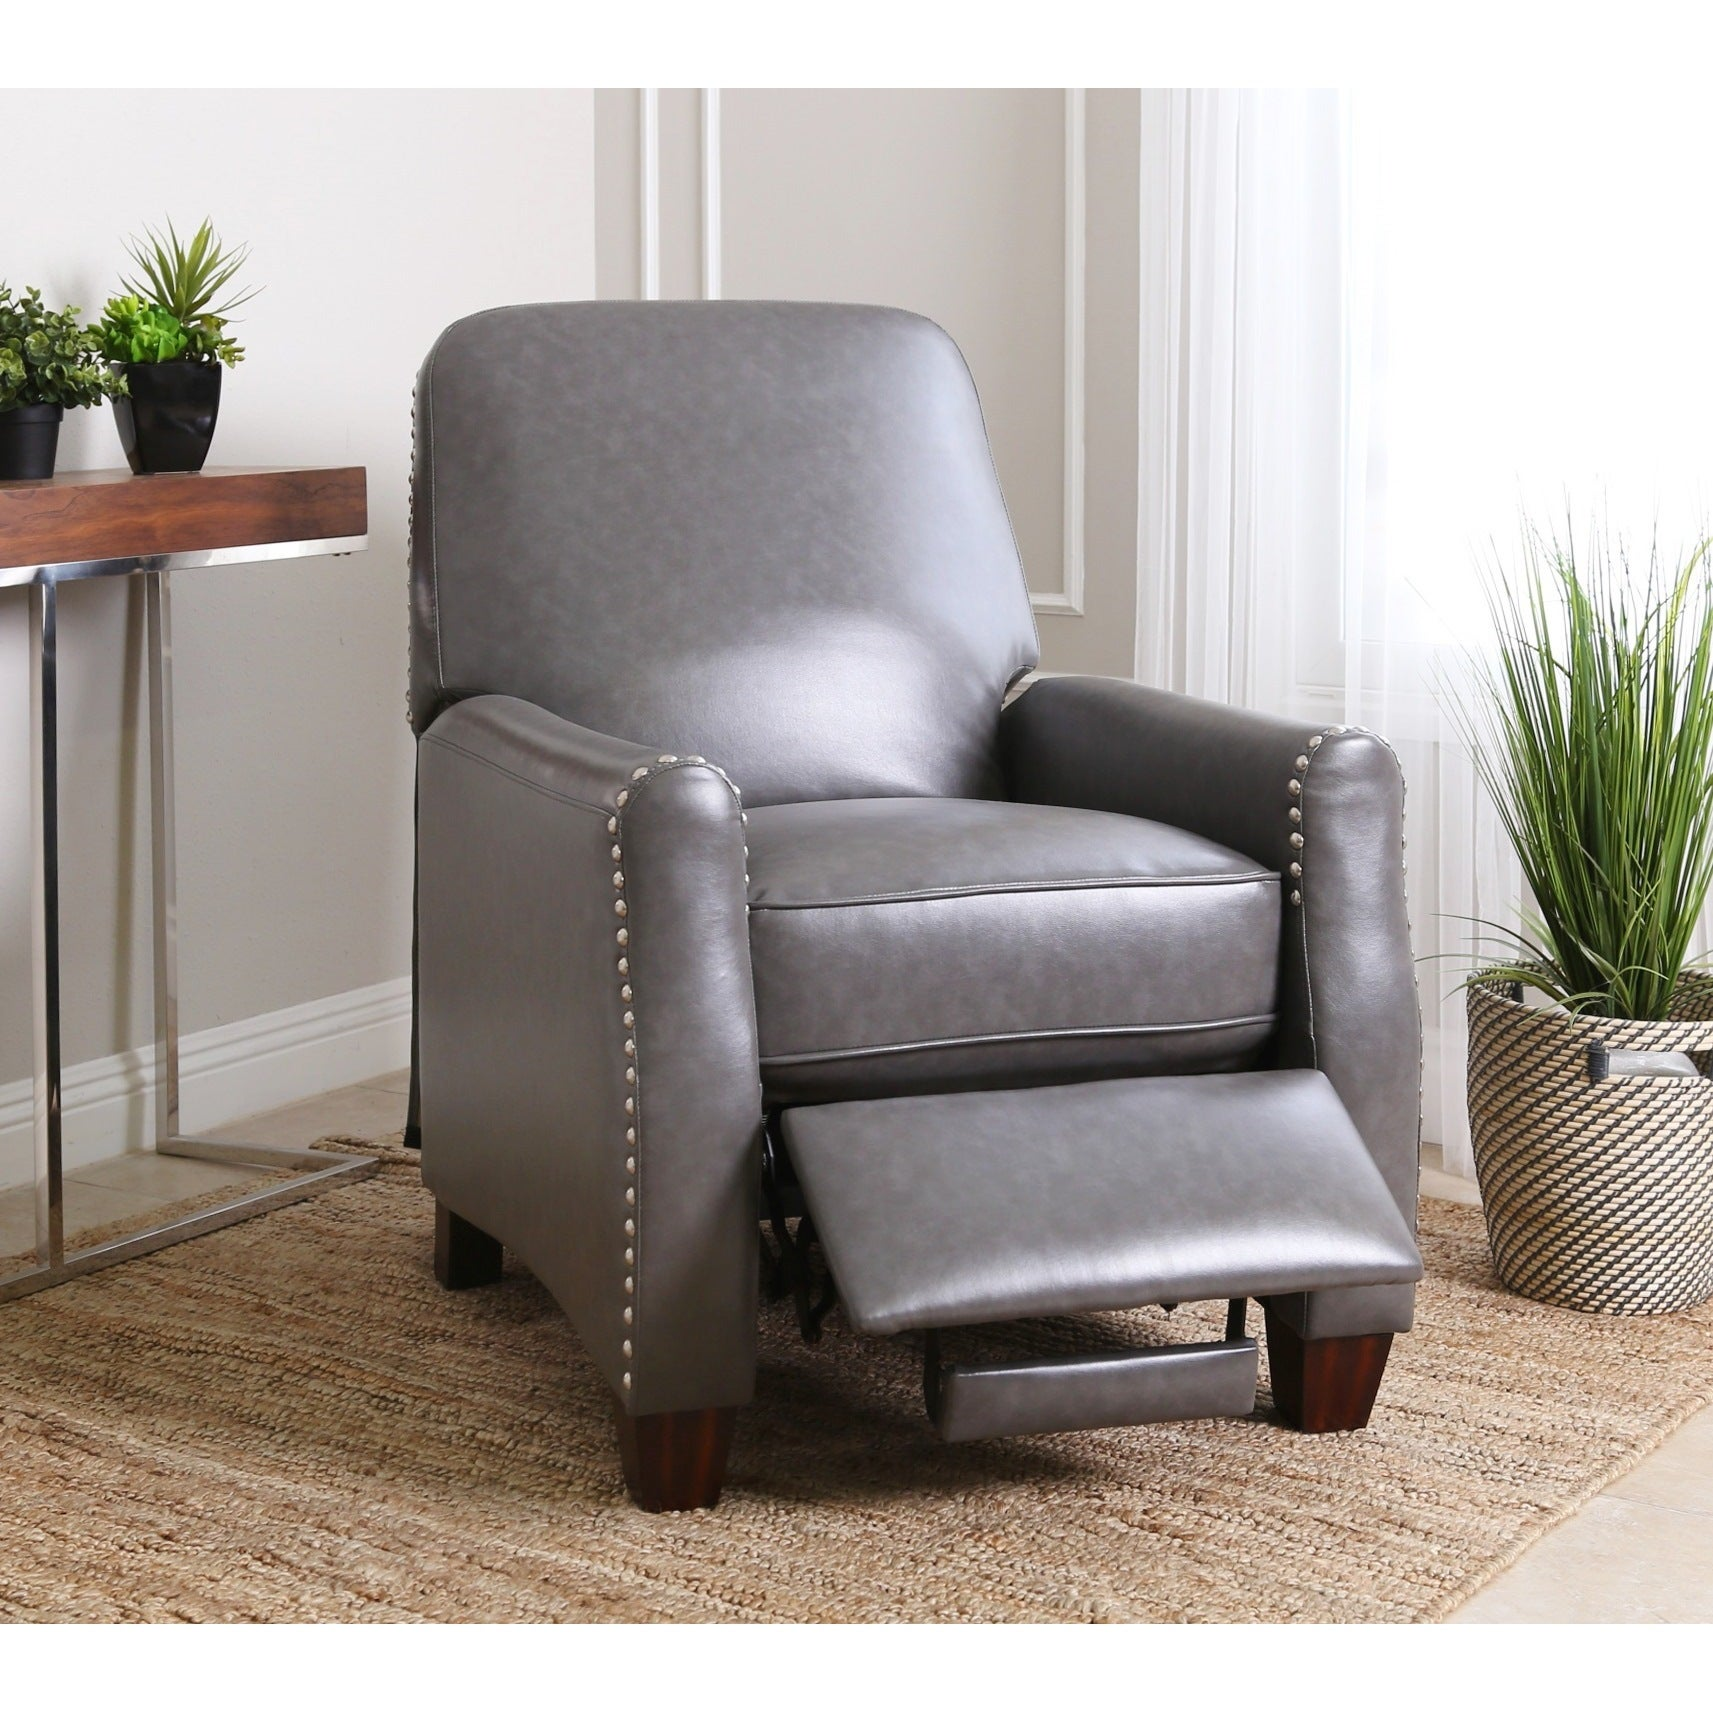 Abbyson Dawson Grey Leather Pushback Recliner - Free Shipping Today ...